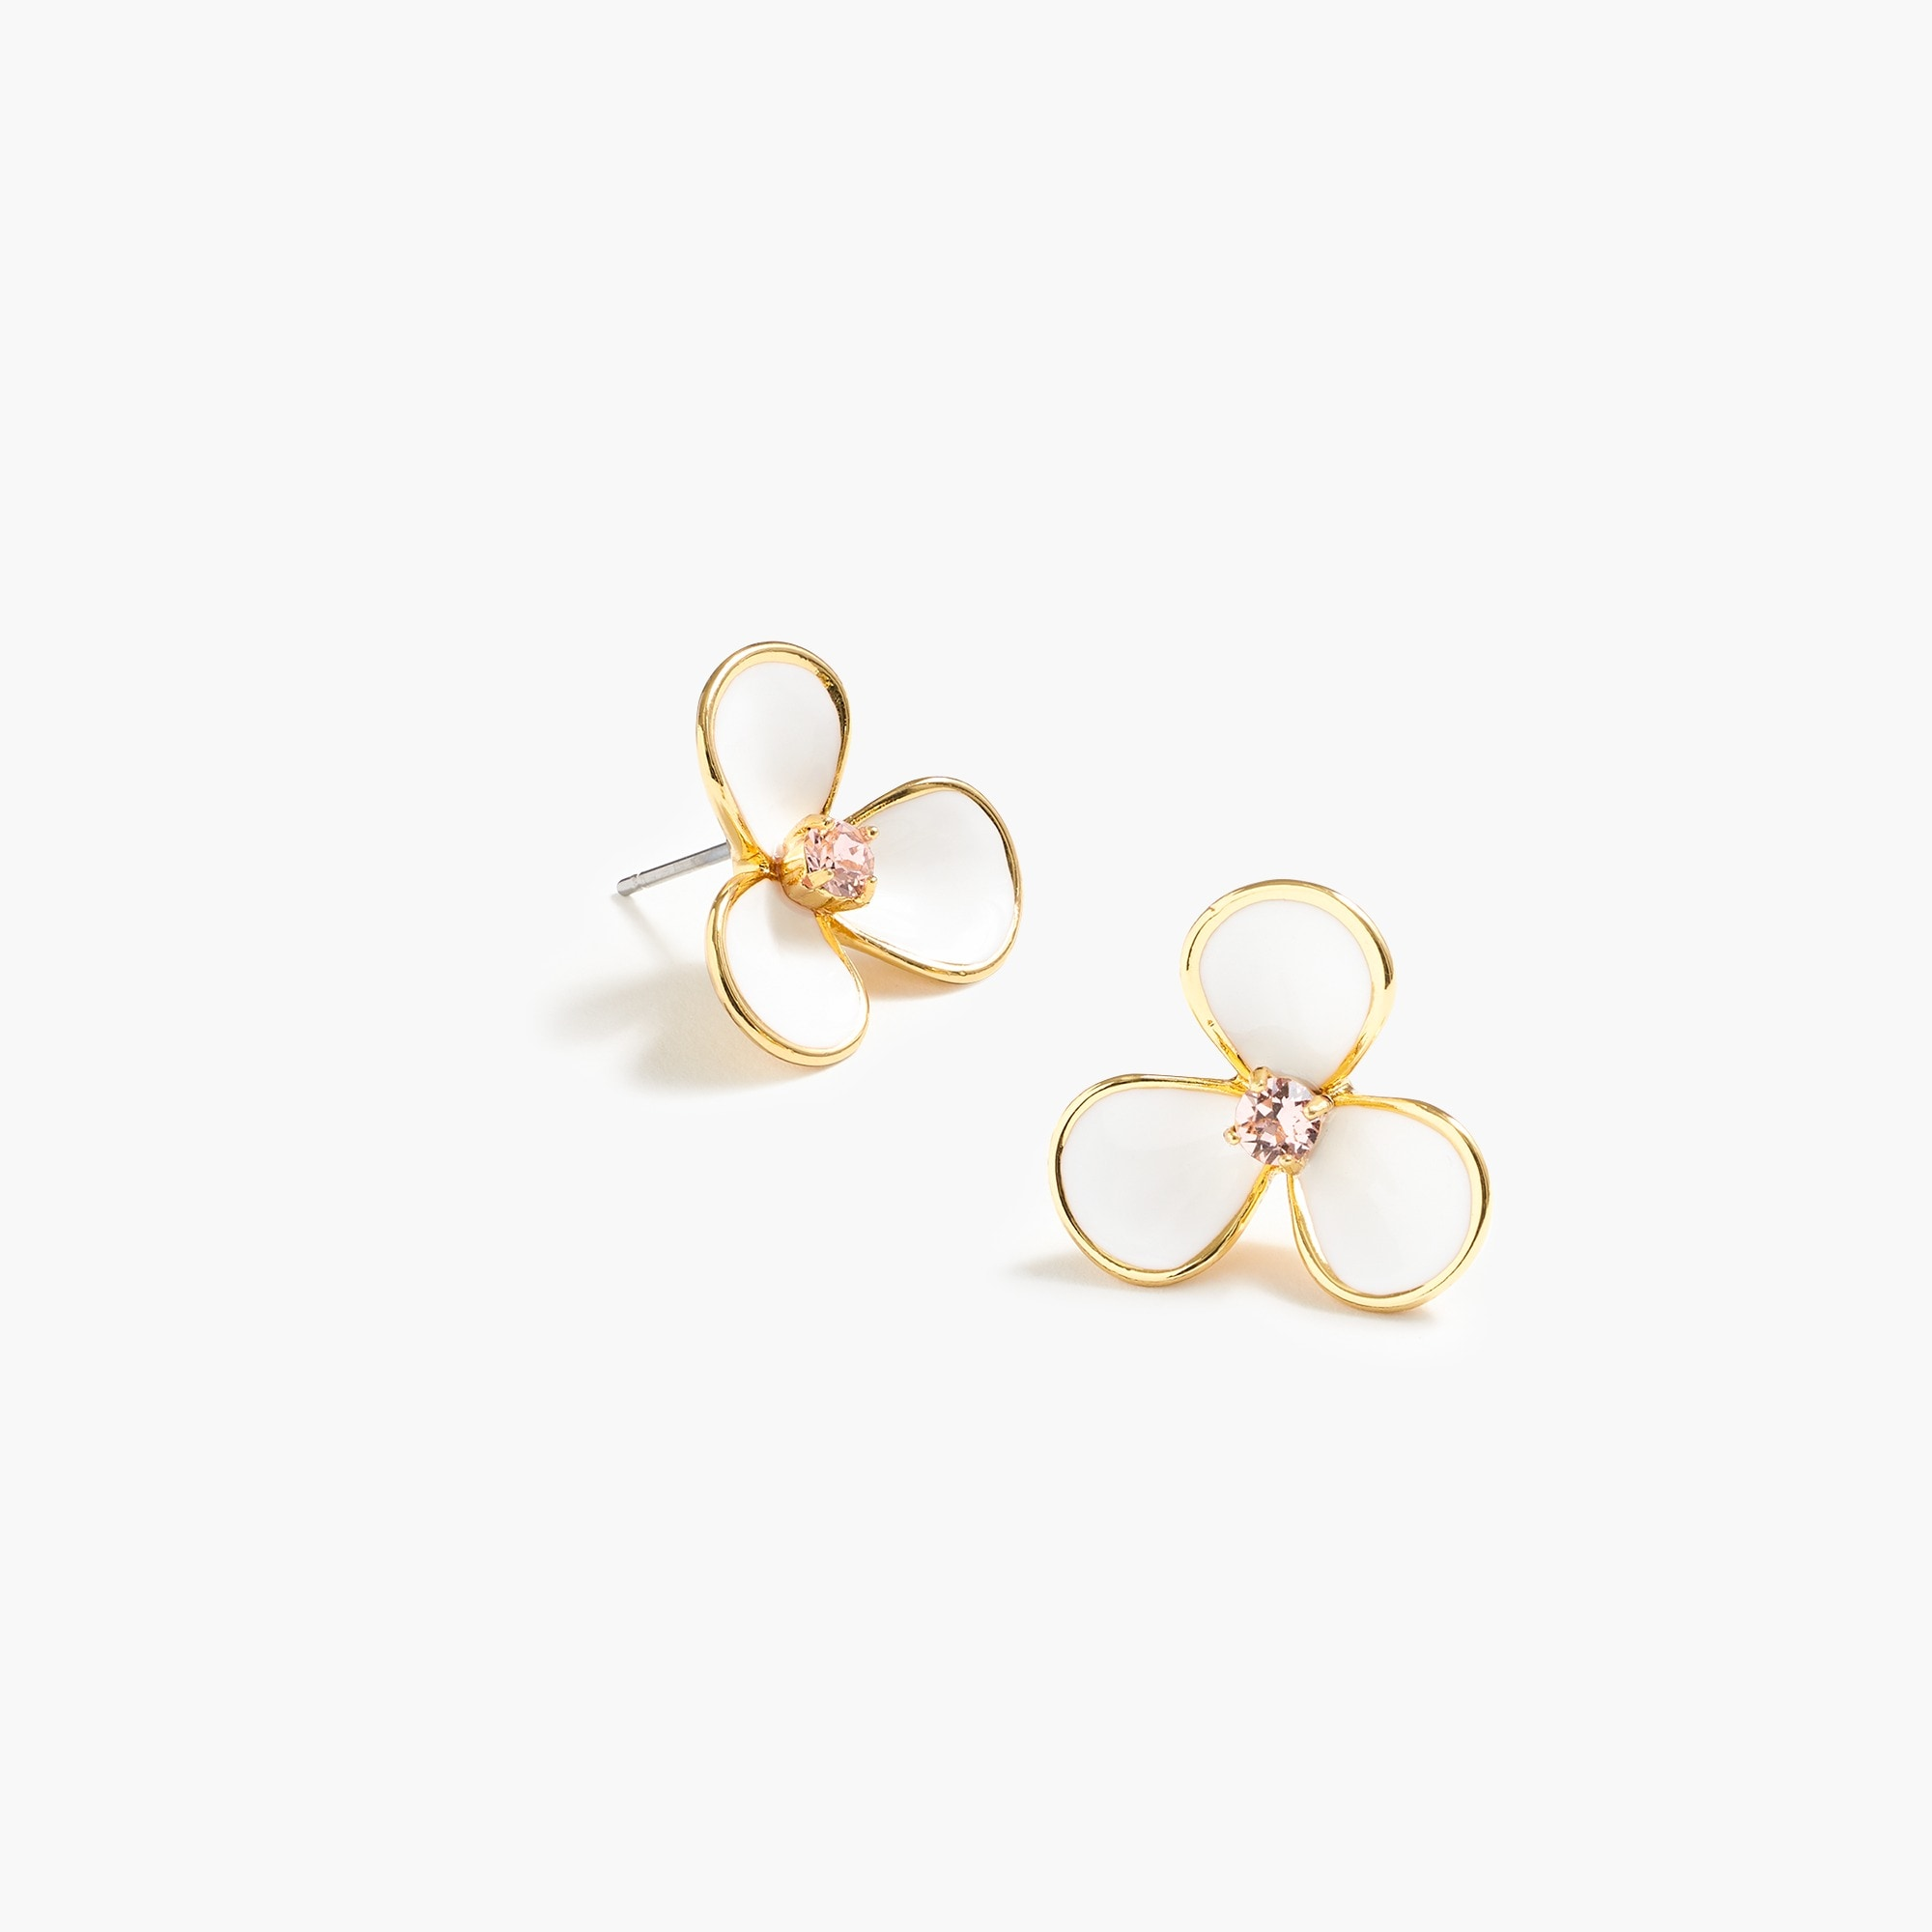 petite petal earrings : women jewelry shop